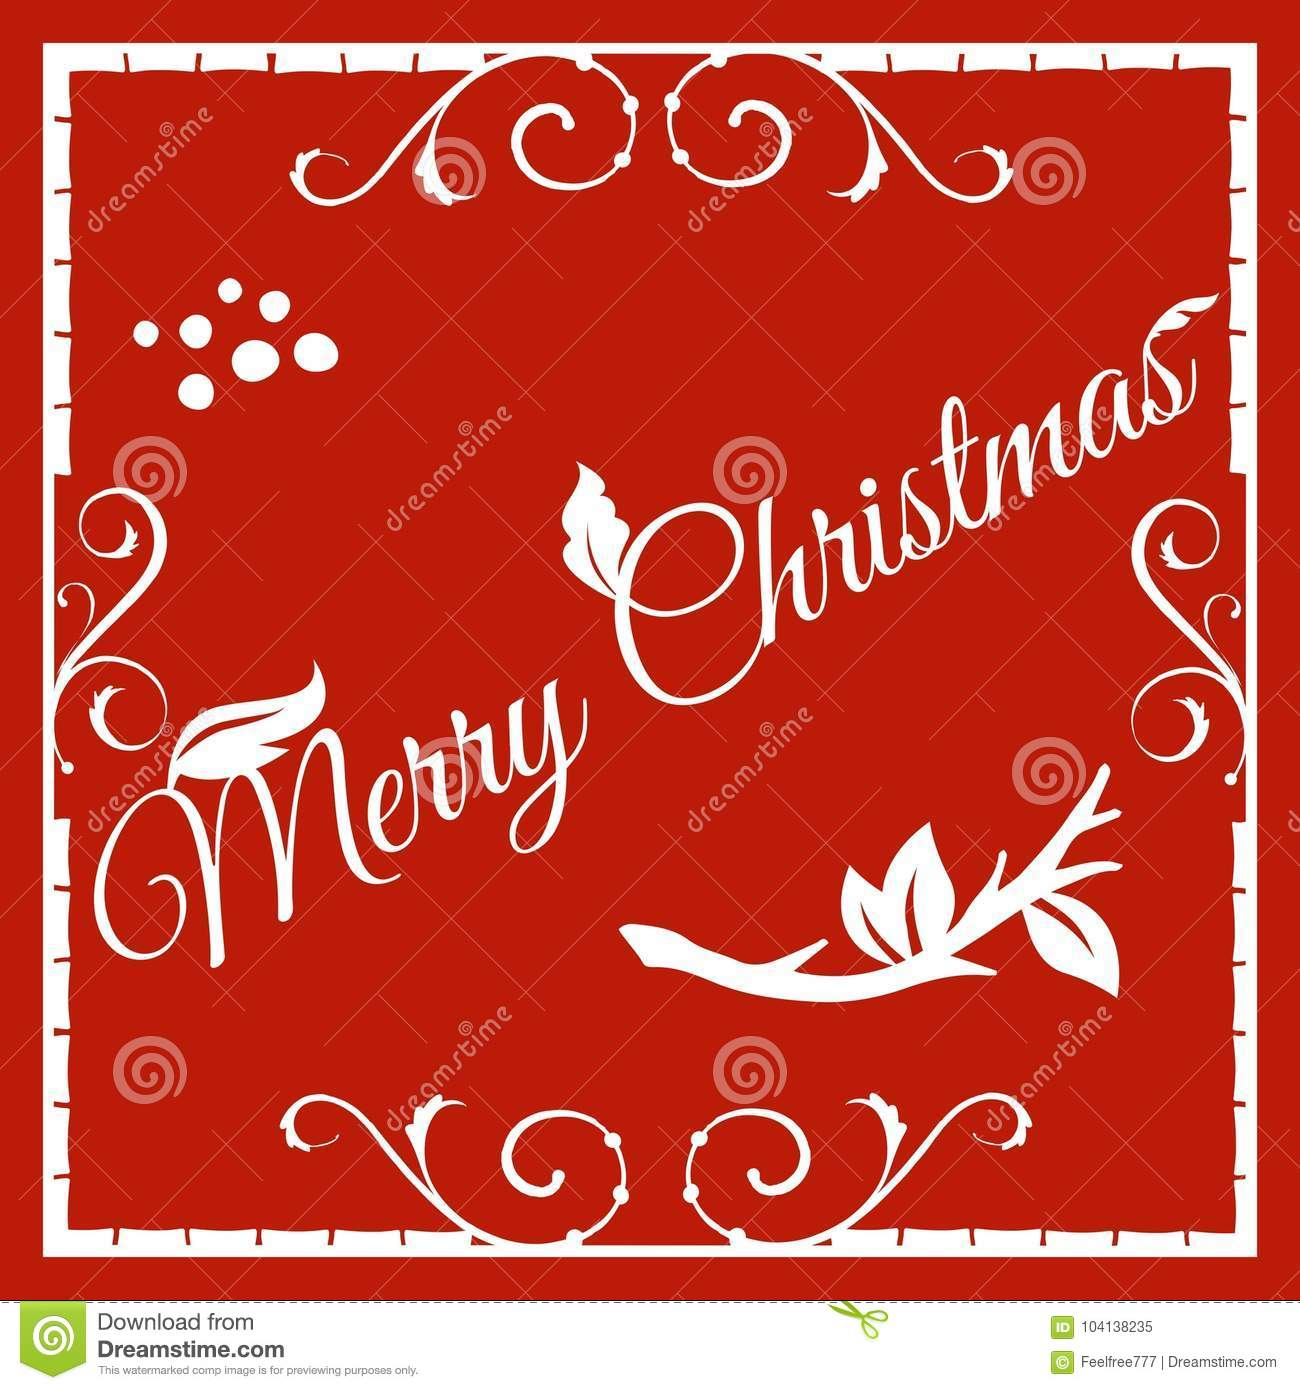 Merry christmas greeting card stock vector illustration of download merry christmas greeting card stock vector illustration of celebrate gift 104138235 m4hsunfo